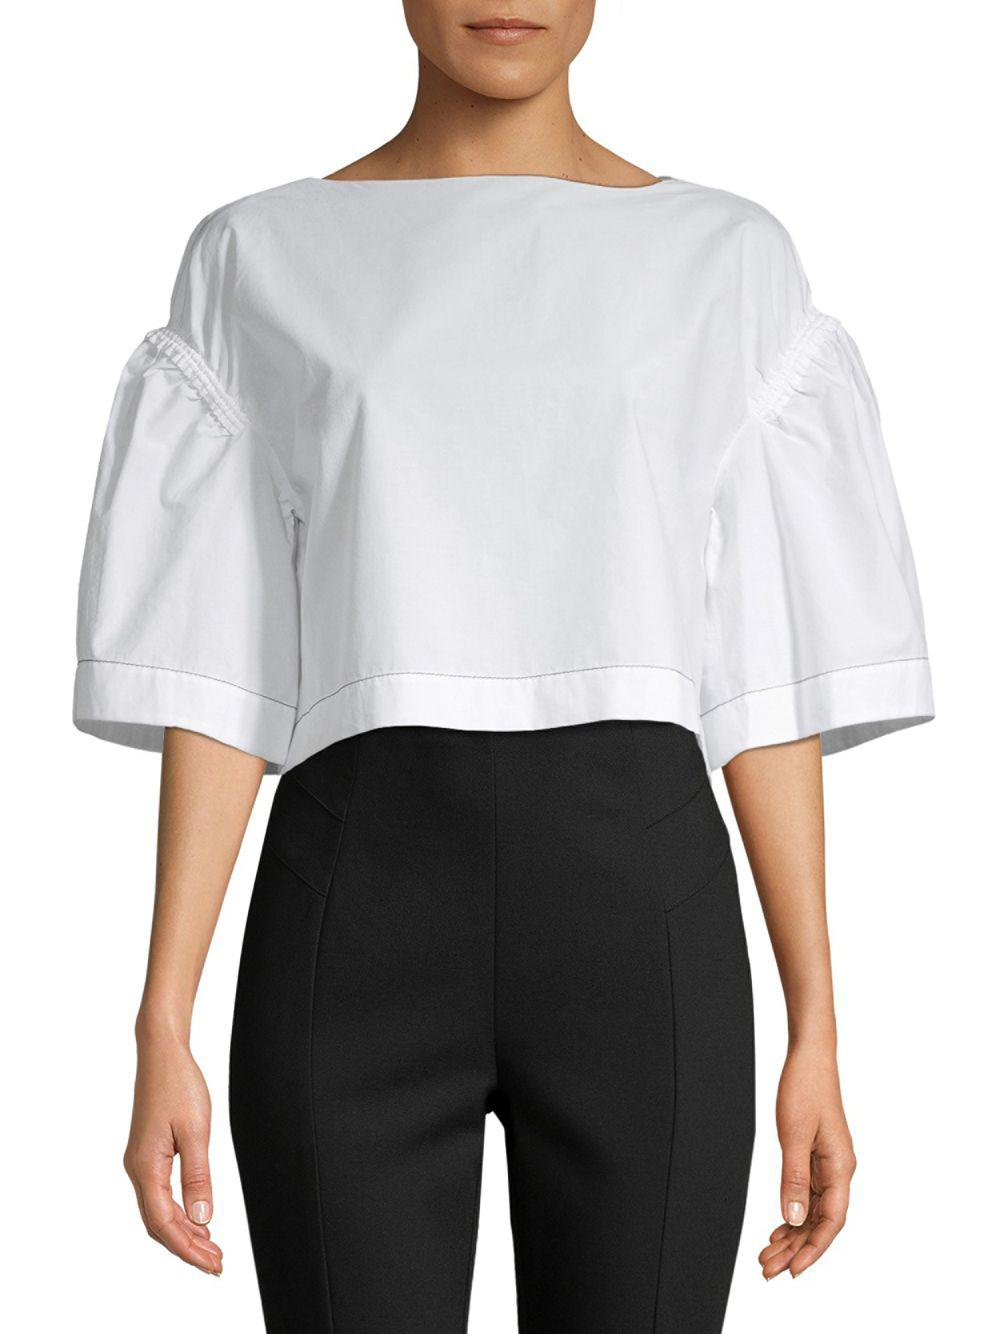 2d17e10a4083e4 Lyst - 3.1 Phillip Lim Puff-sleeve Cropped Blouse in White